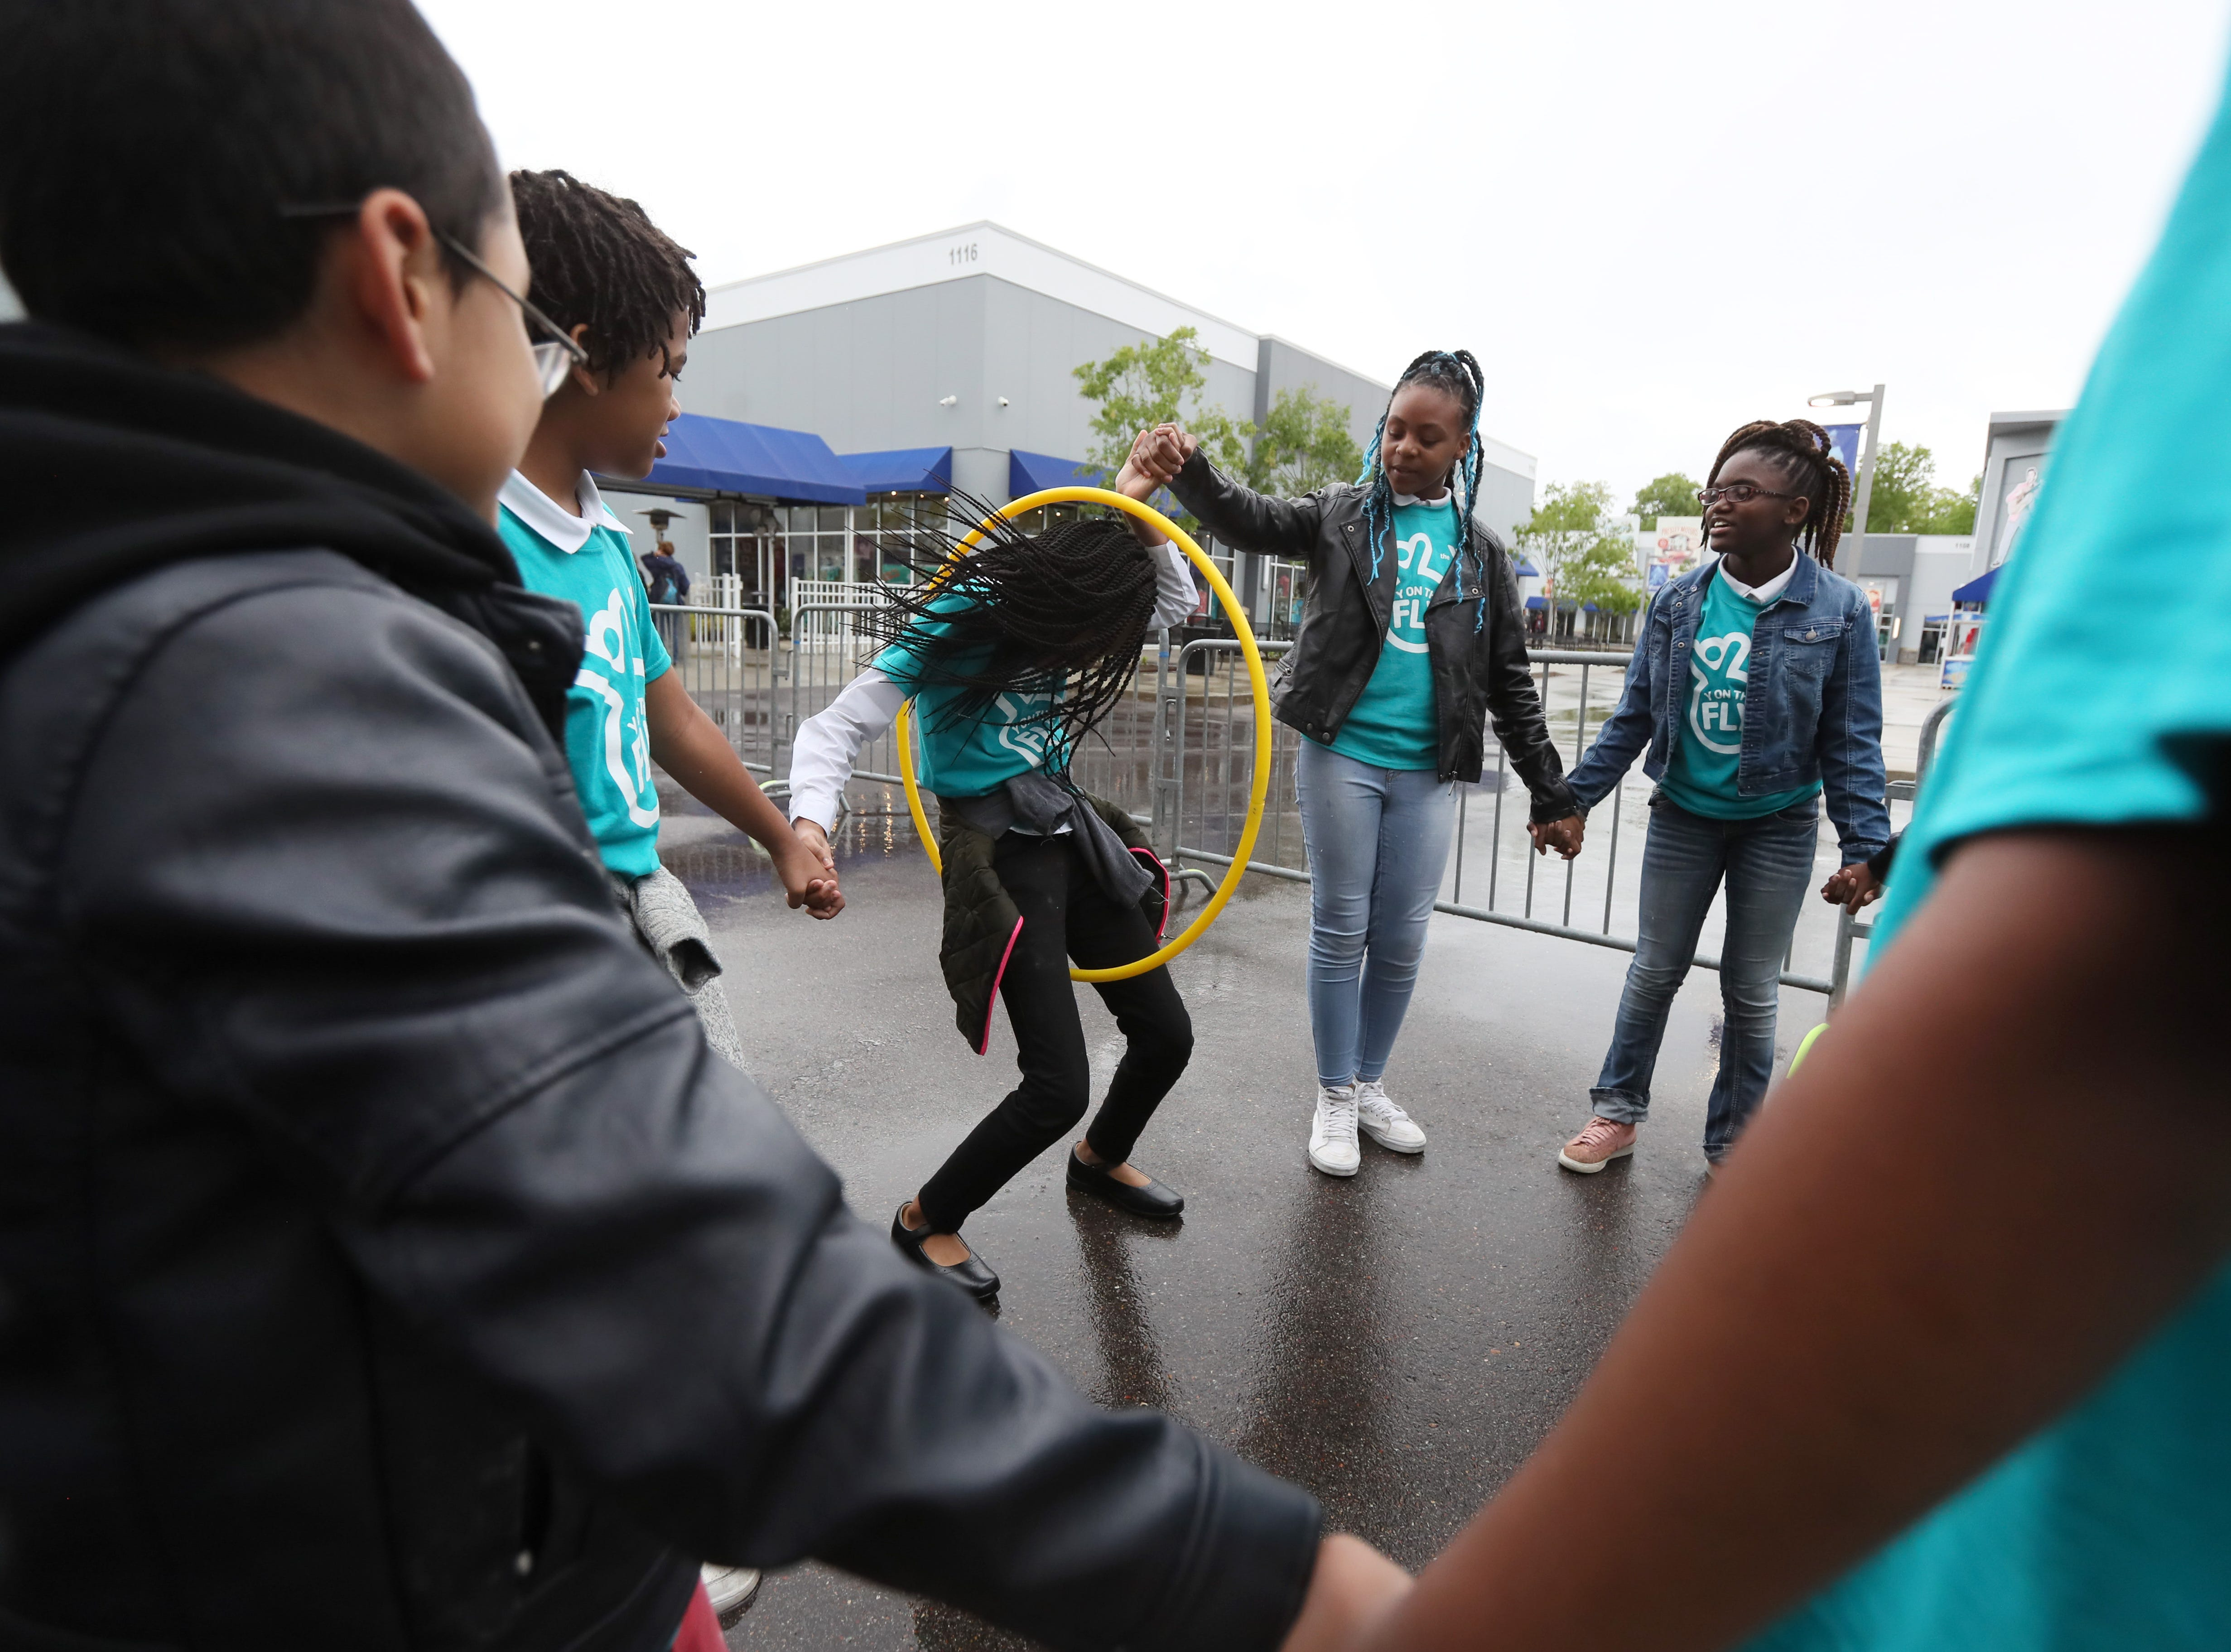 Children play alongside the YMCA announcement of their 'Y on the Fly' program at the Graceland soundstage in Whitehaven on Thursday, April 18, 2019. The Y-without-walls concept comes with two vans that will deliver programs and services to young people who don't live near a YMCA.